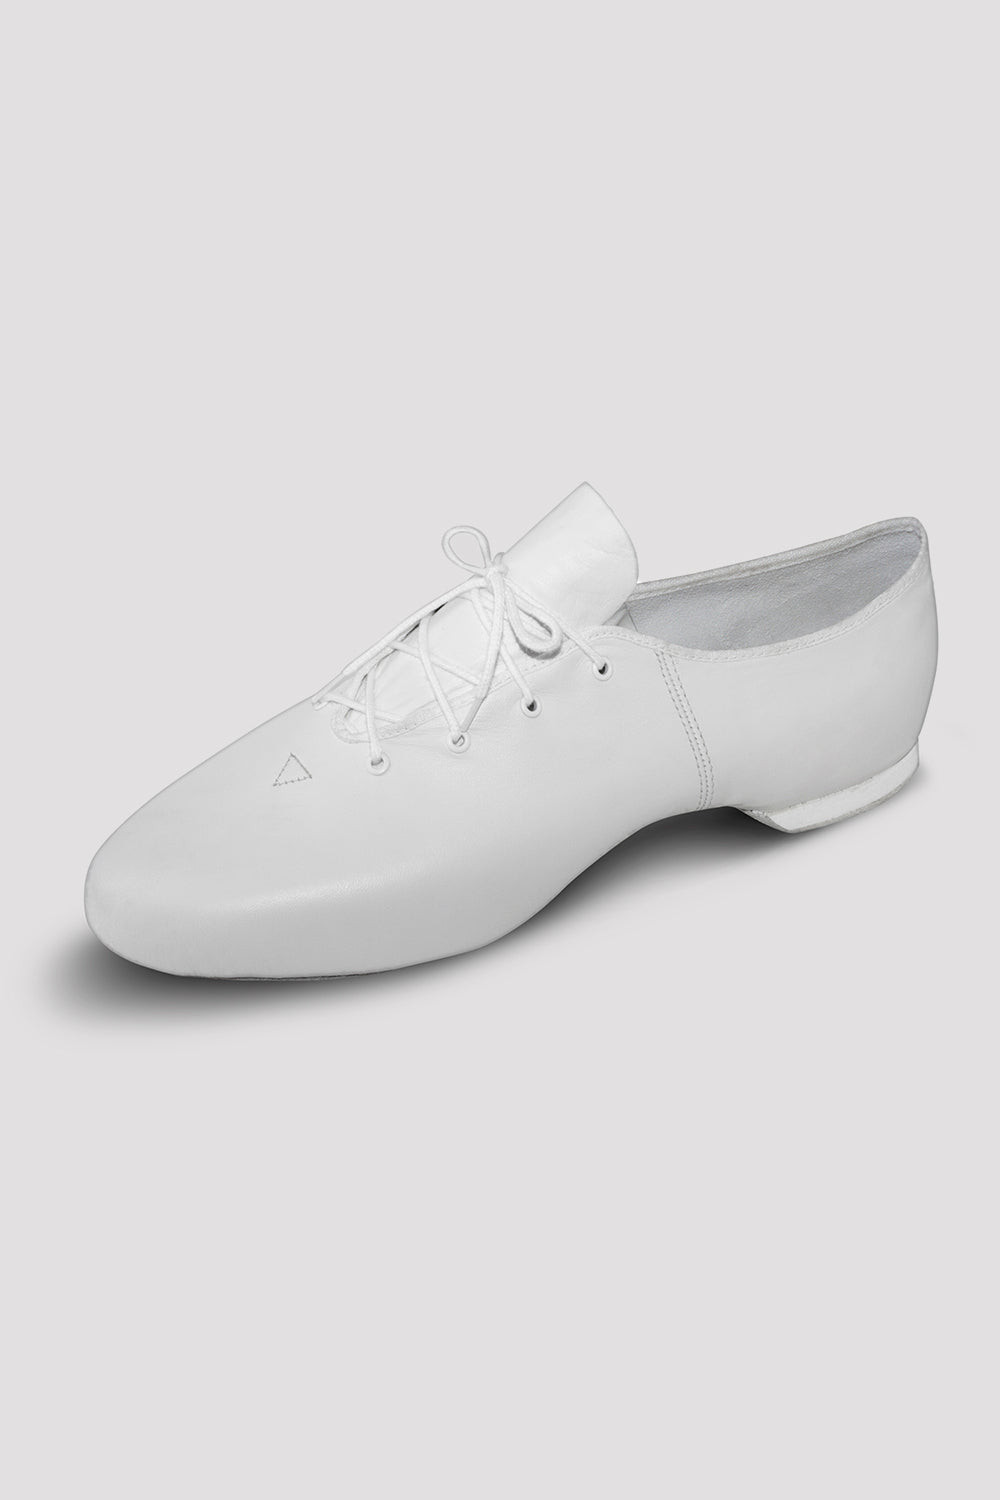 Mens Leather Jazz Shoes, White   BLOCH UK